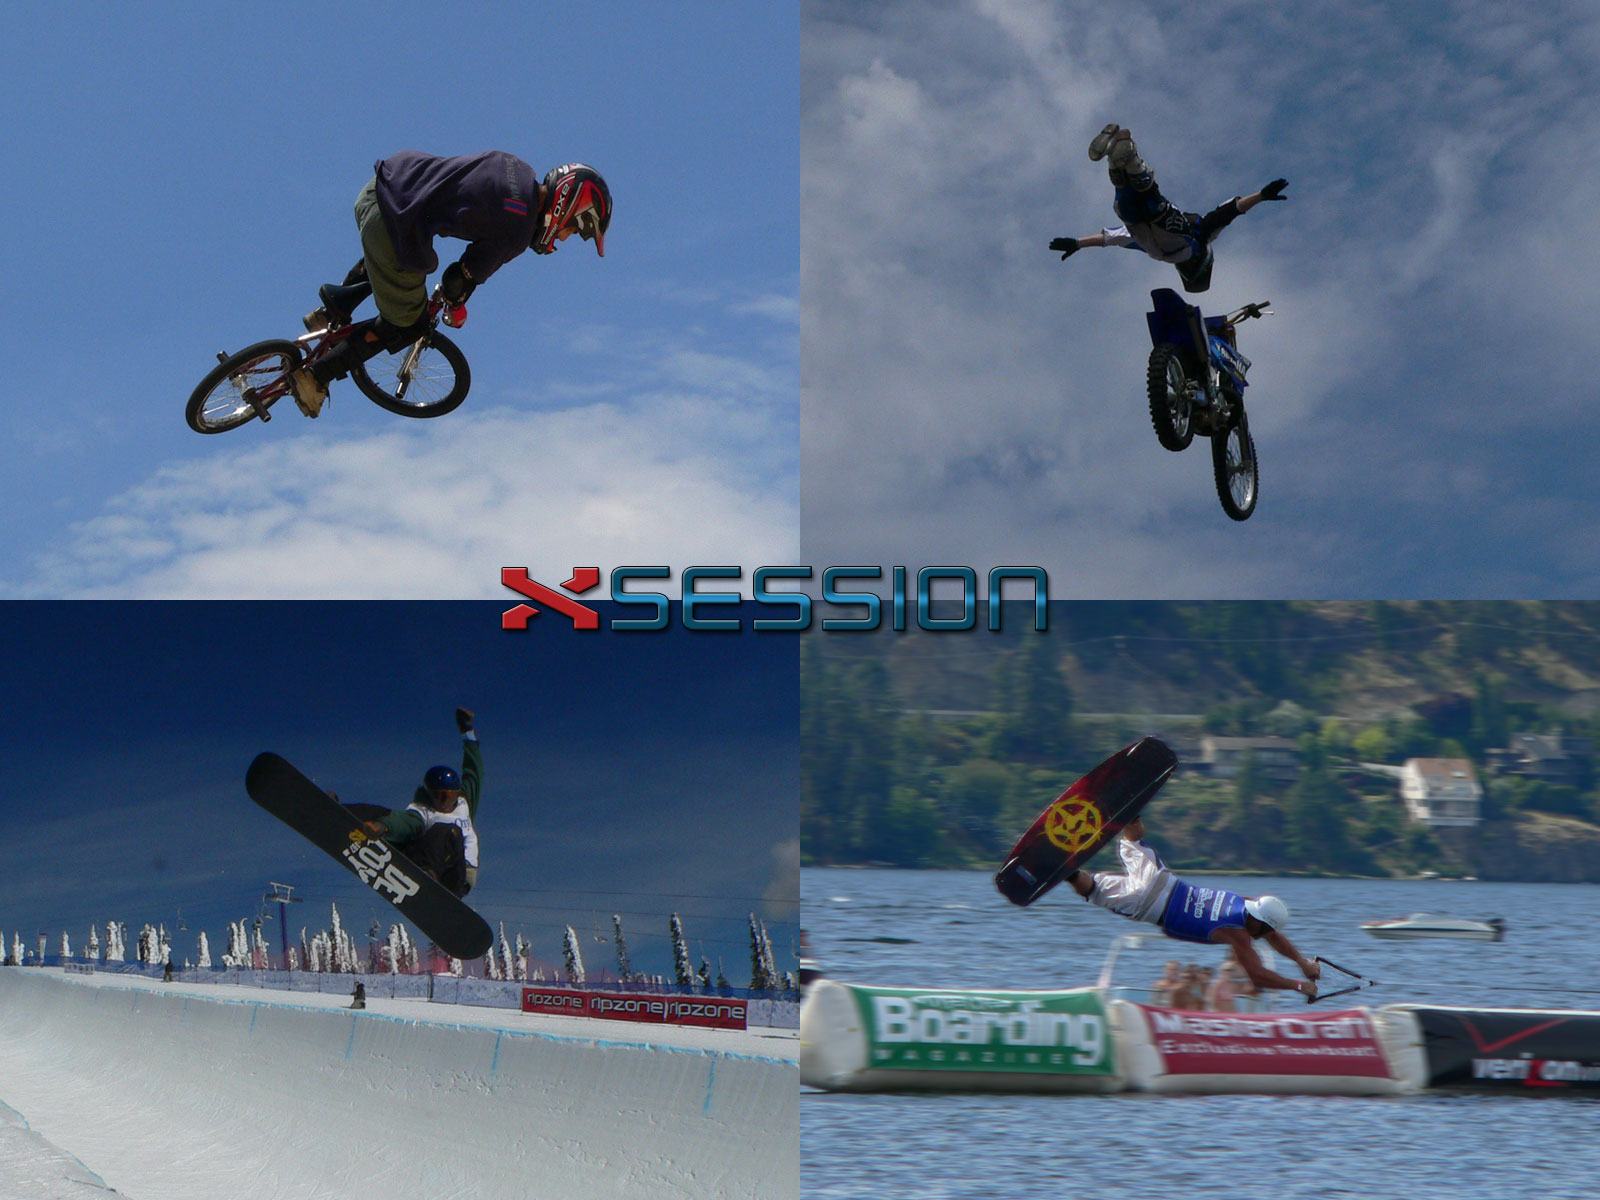 xsession - Extreme Sport Desktop Wallpaper